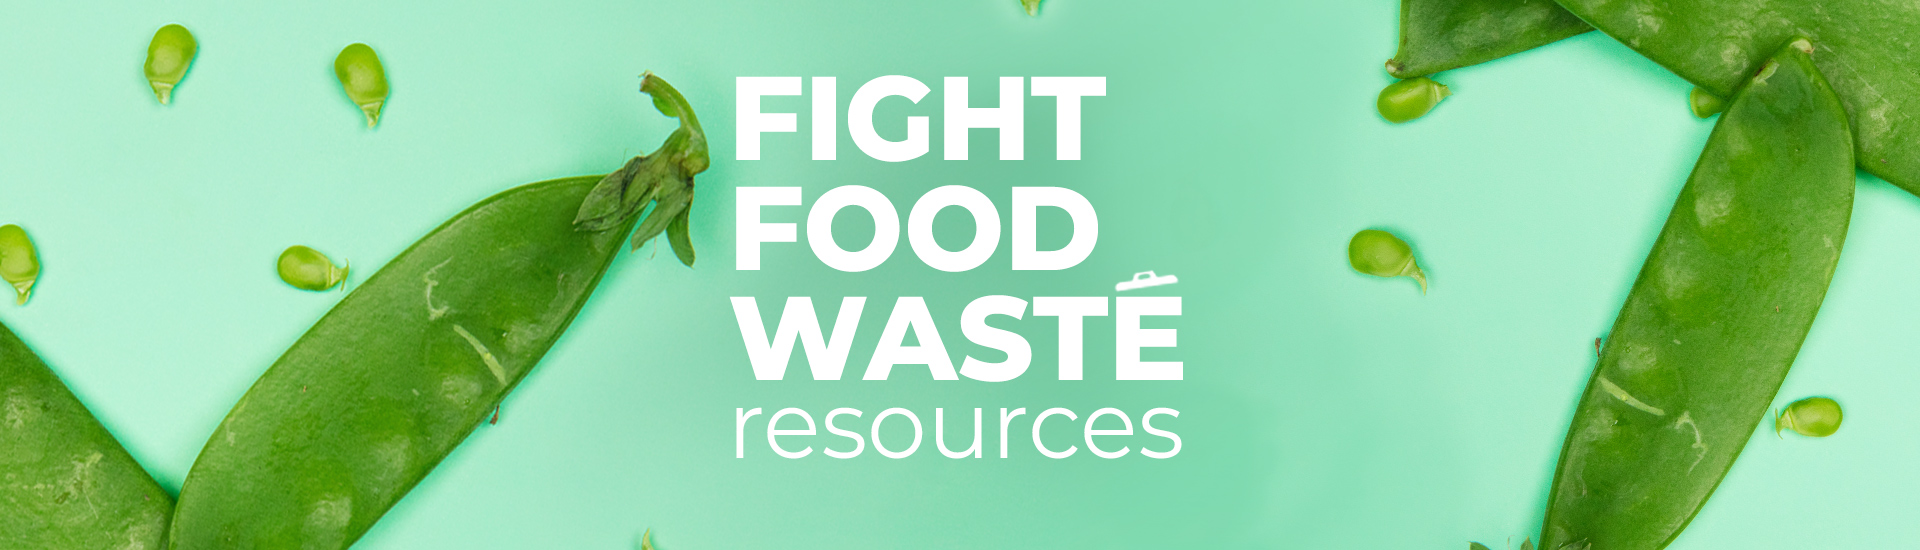 Fight food waste, resources, snow peas in the background.